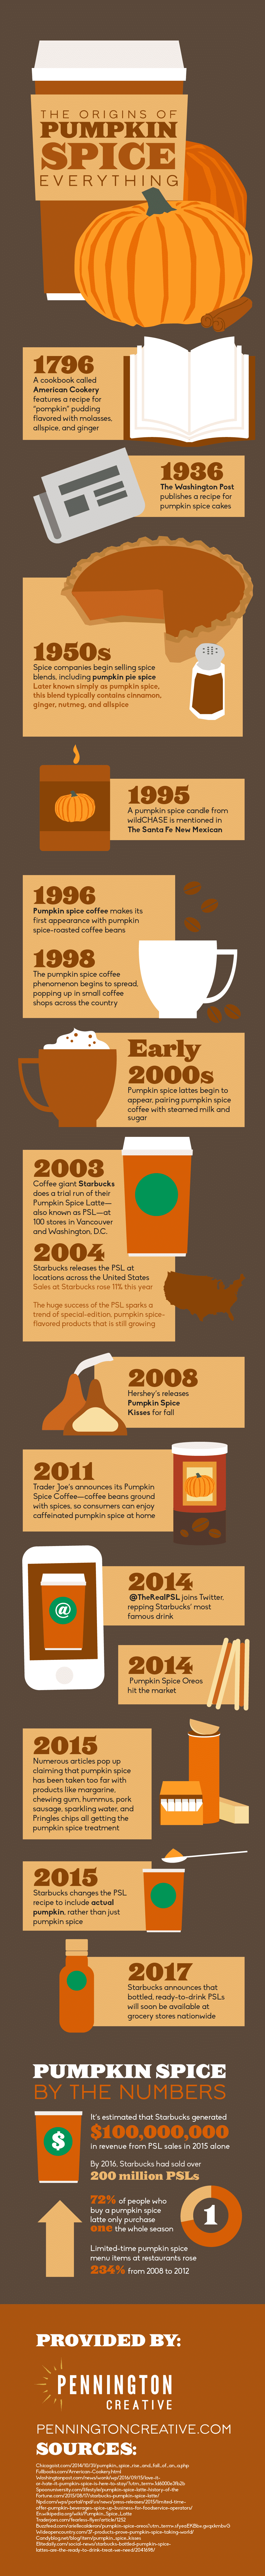 Infographic about the history of pumpkin spice.